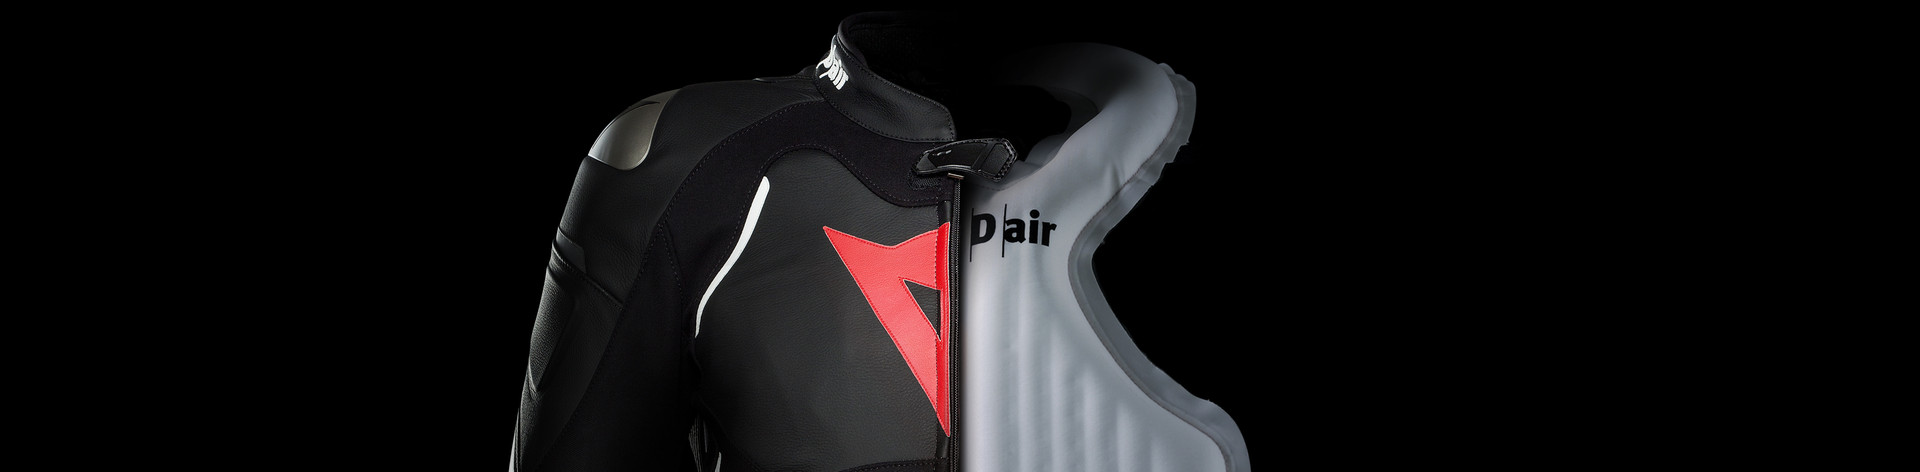 Motorcycle Clothing with D Air® System Dainese (Official Shop)